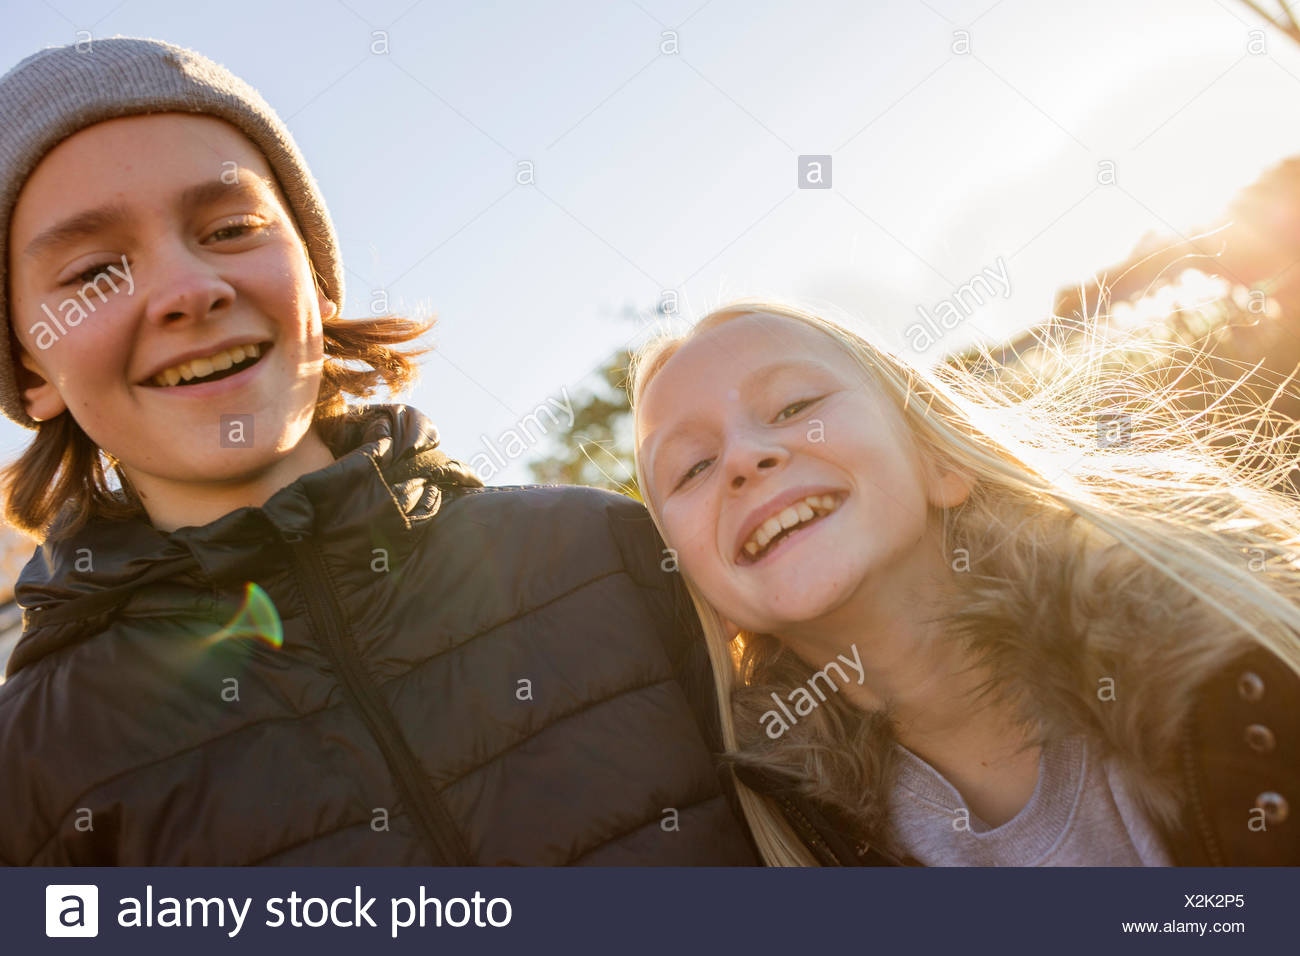 Brother and sister smiling - Stock Image